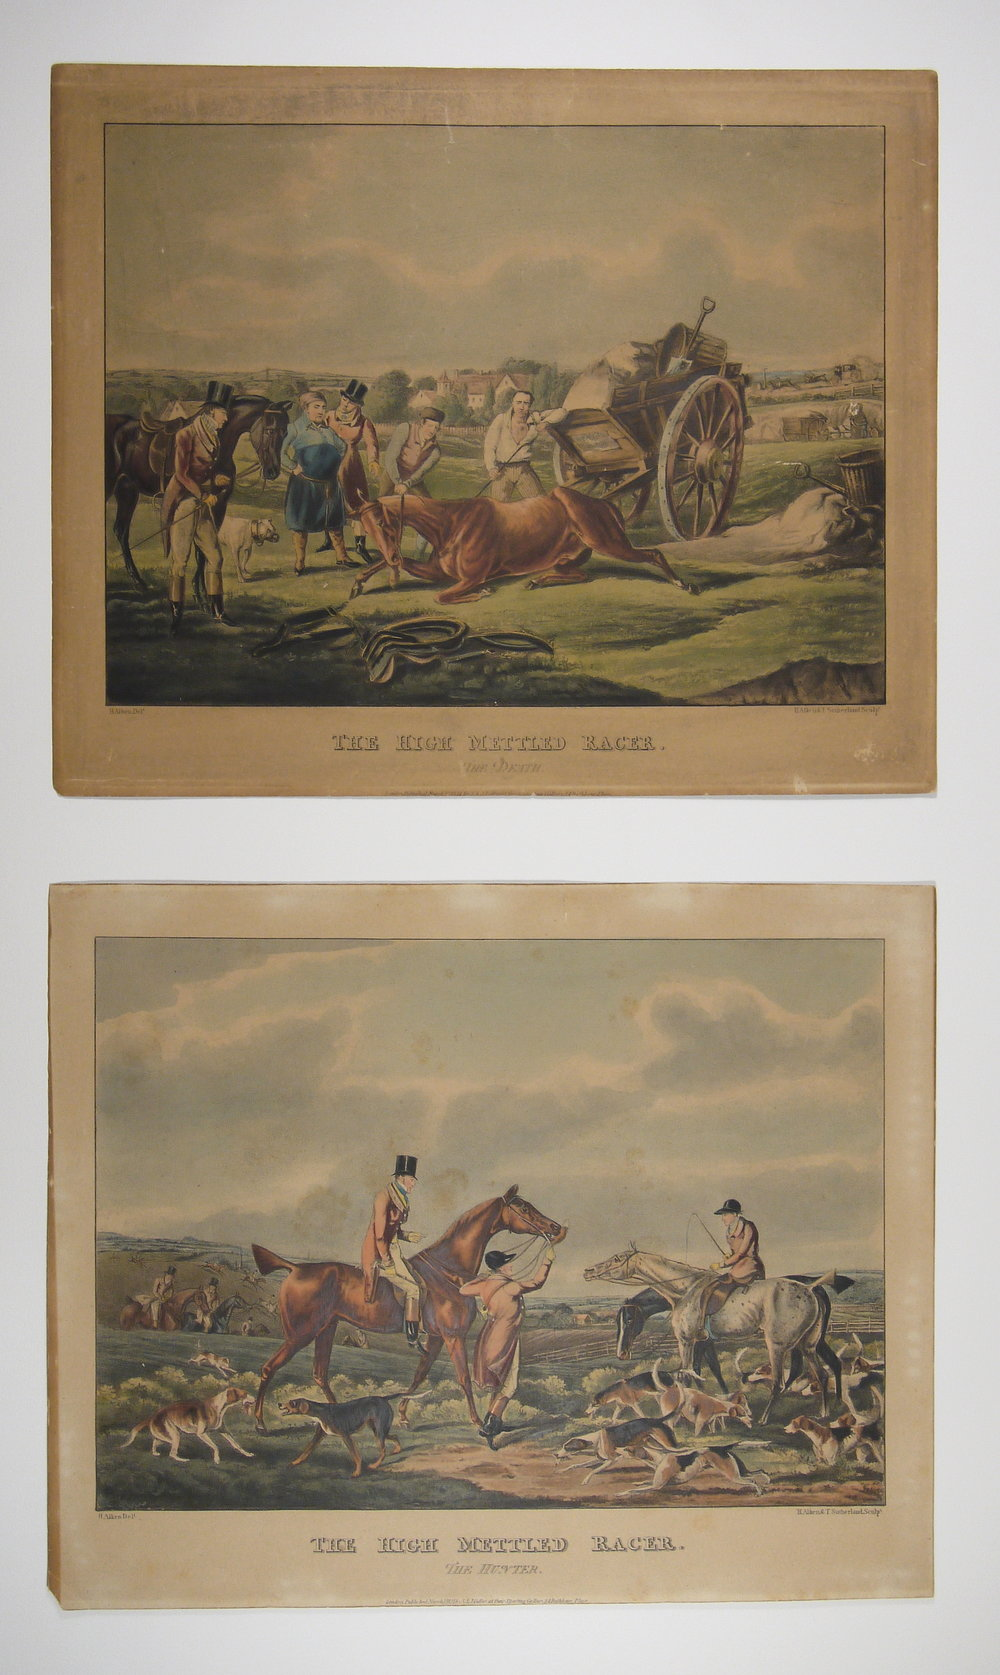 Before conservation: two prints from the same set, the top print significantly darker.